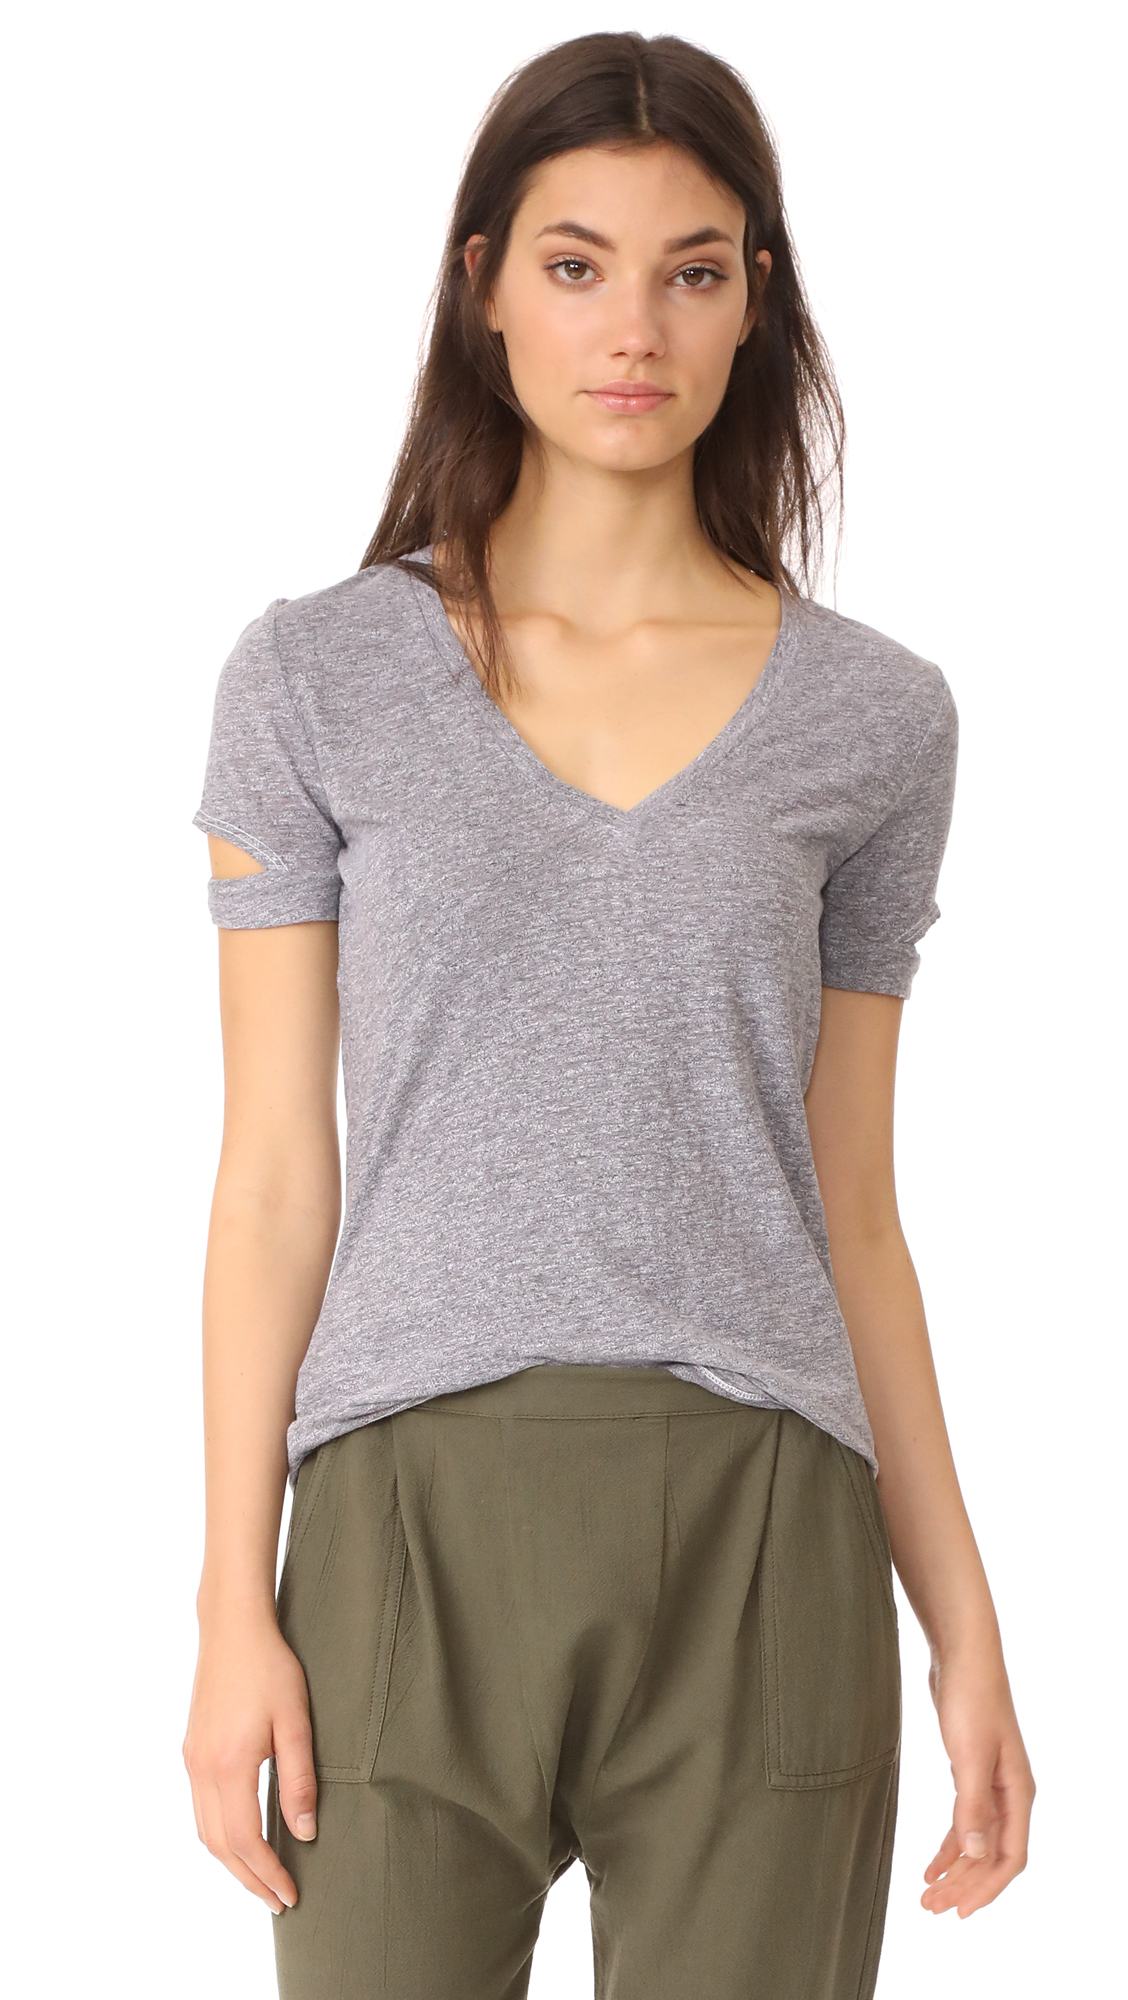 Lanston Slit Sleeve Tee In Heather